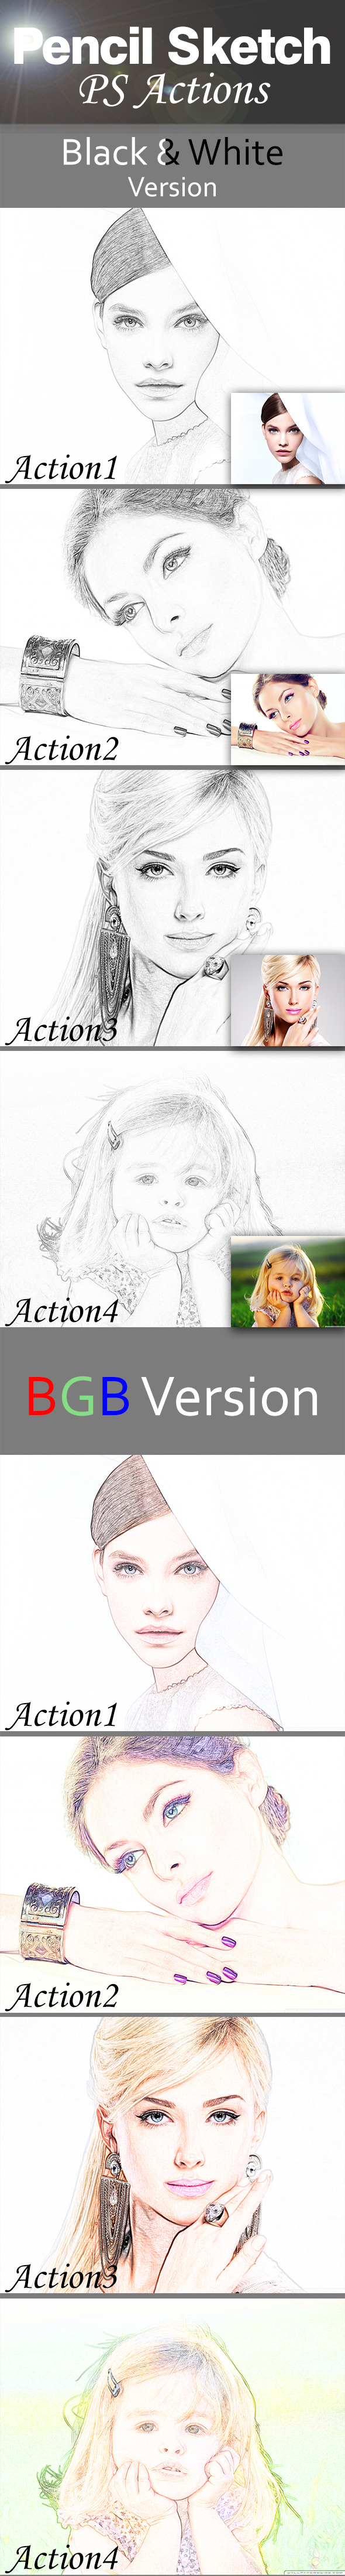 Pencil Sketch Actions - Photo Effects Actions